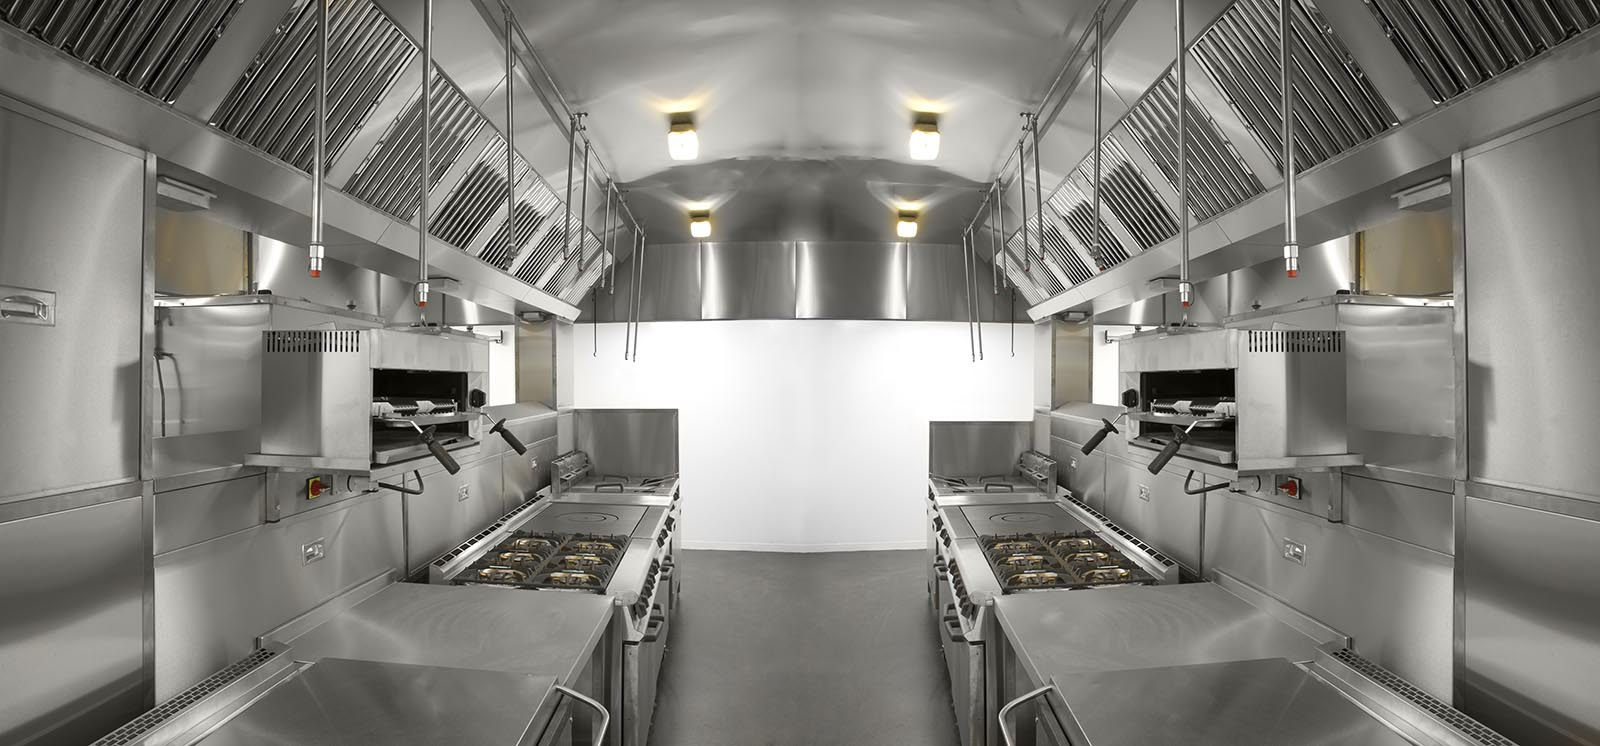 Kitchen Inspection For Home Baking Ca